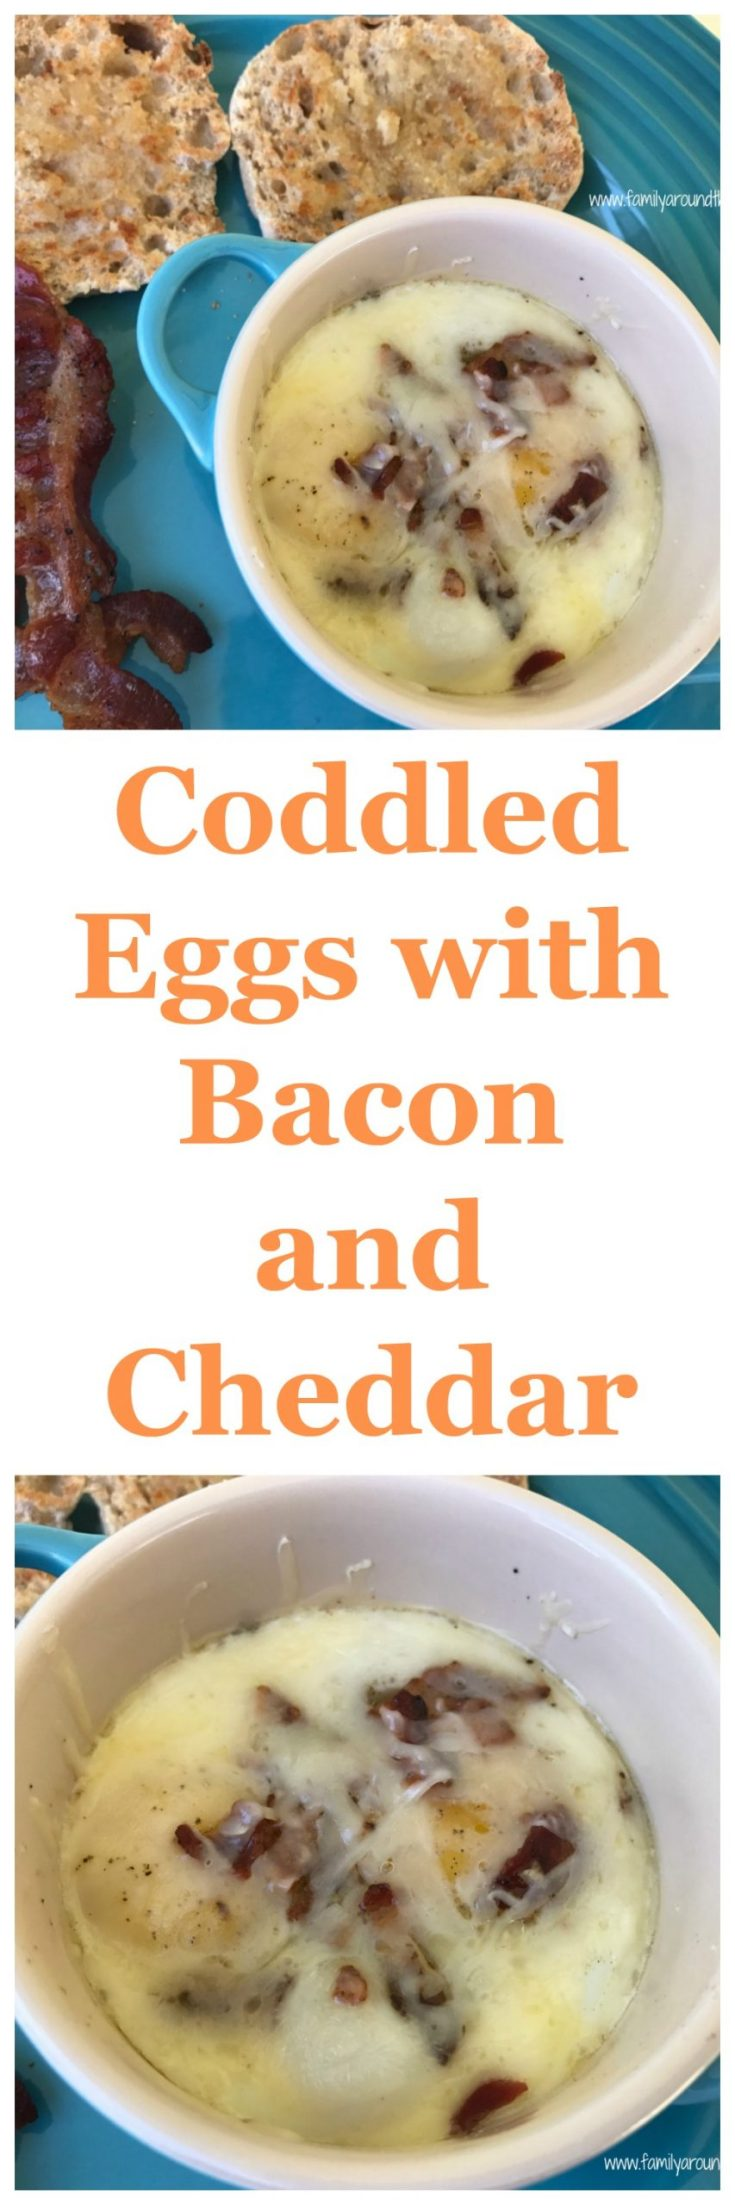 Coddled eggs with bacon and cheddar are a great Sunday morning breakfast.